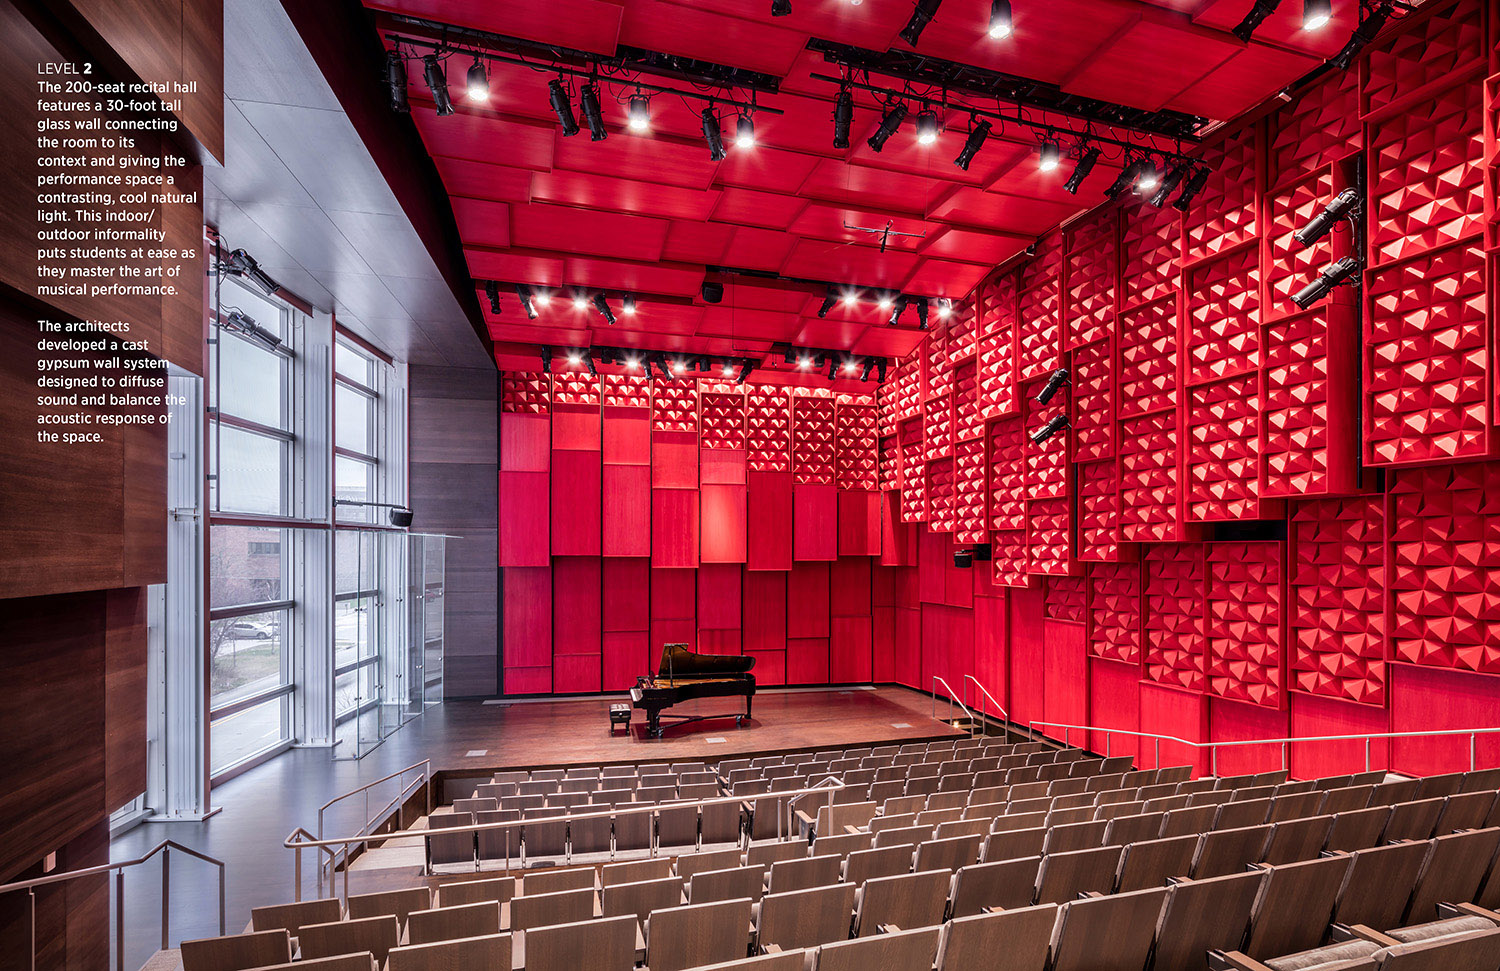 The 200-seat recital hall at the second level features a 30-foot tall glass wall connecting the room to its context and giving the performance space a contrasting, cool natural light. This indoor/outdoor i Tim Griffith}